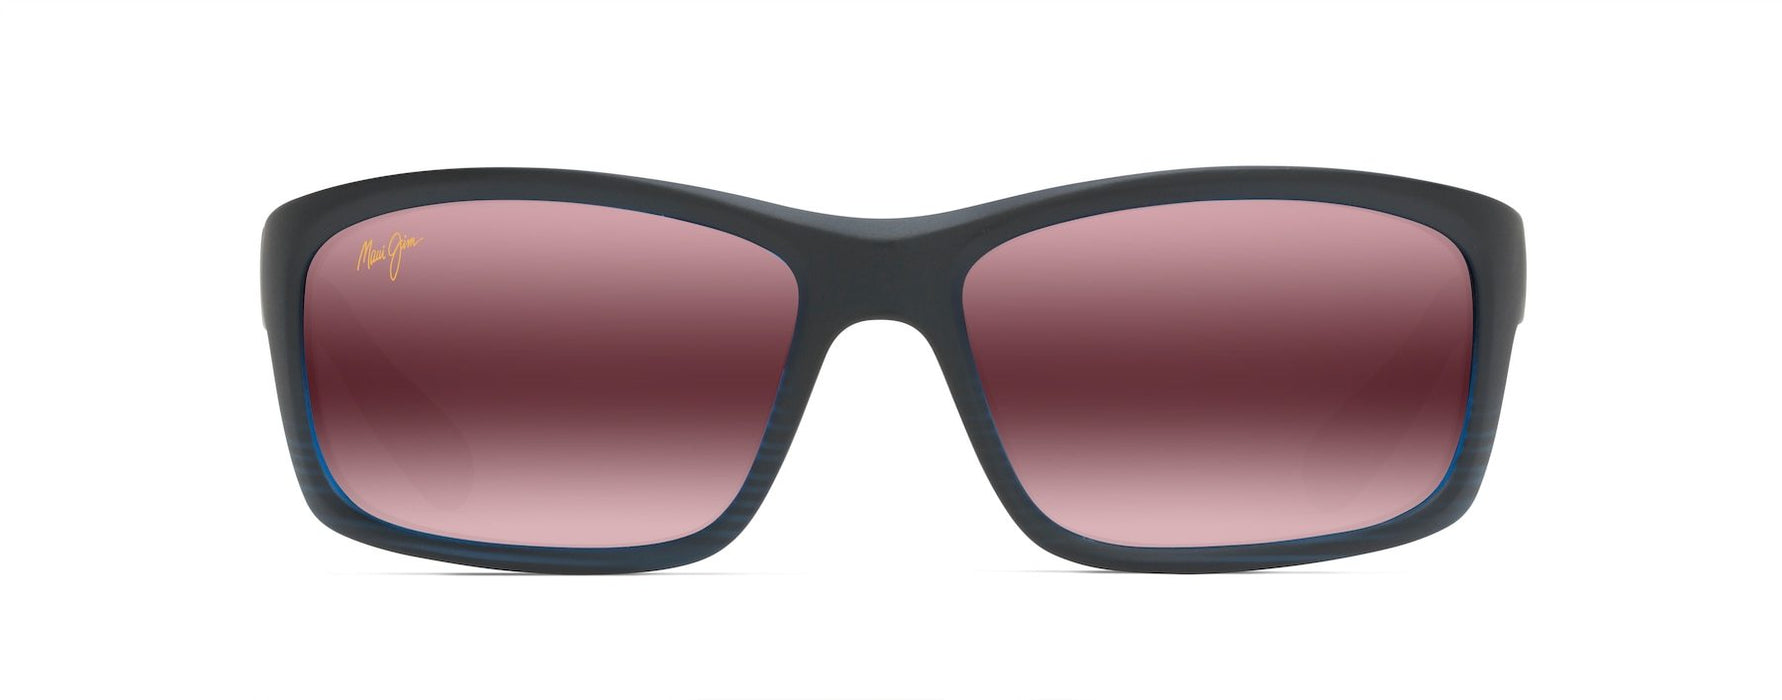 MyMaui Kanaio Coast MM766-016 Sunglasses